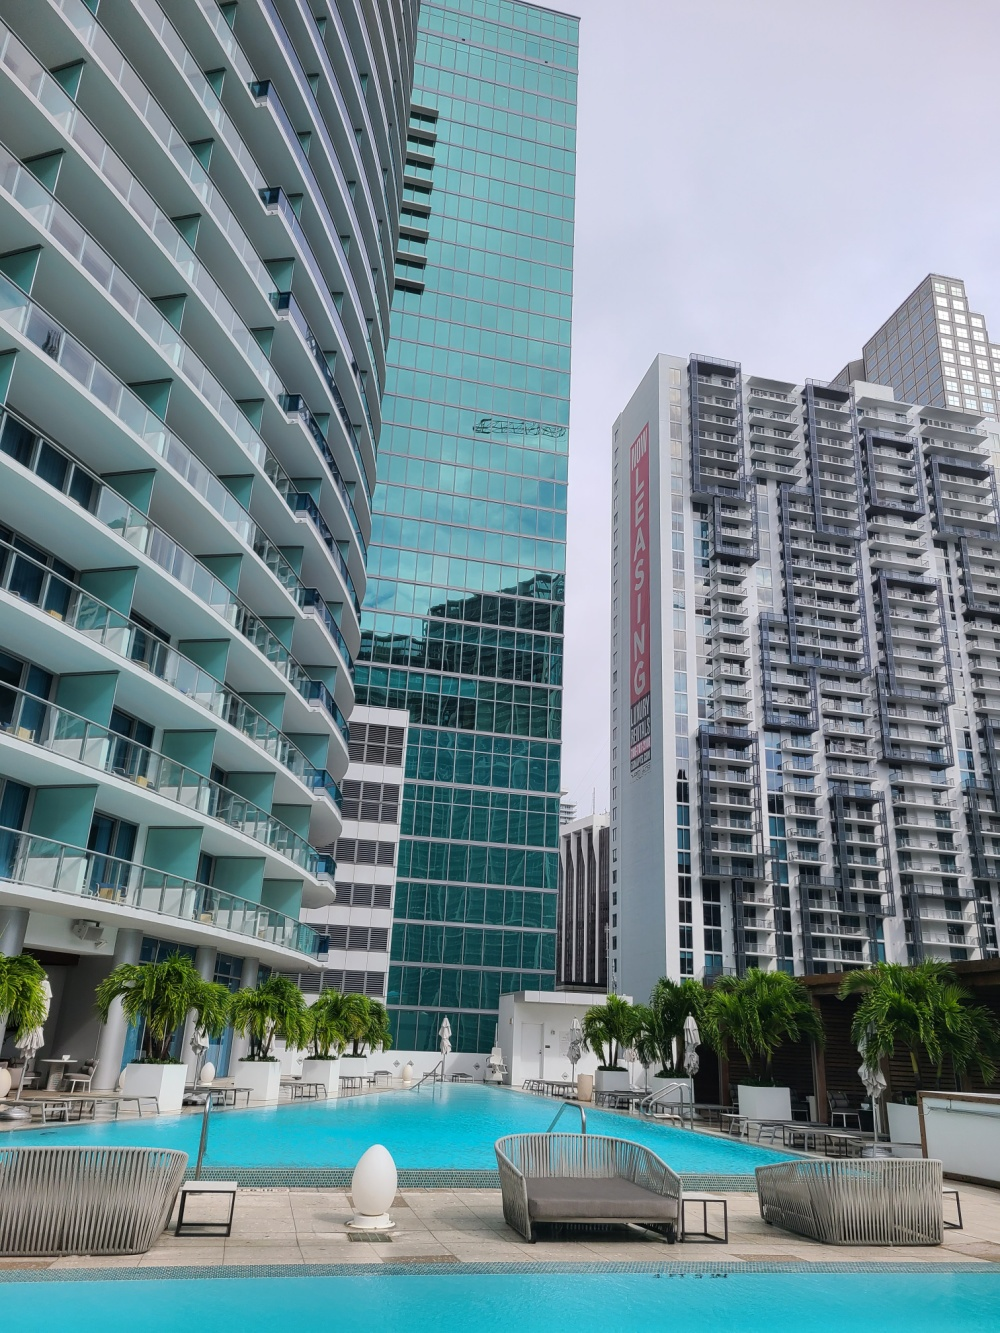 Things To Do In Miami Epic Hotel Pool